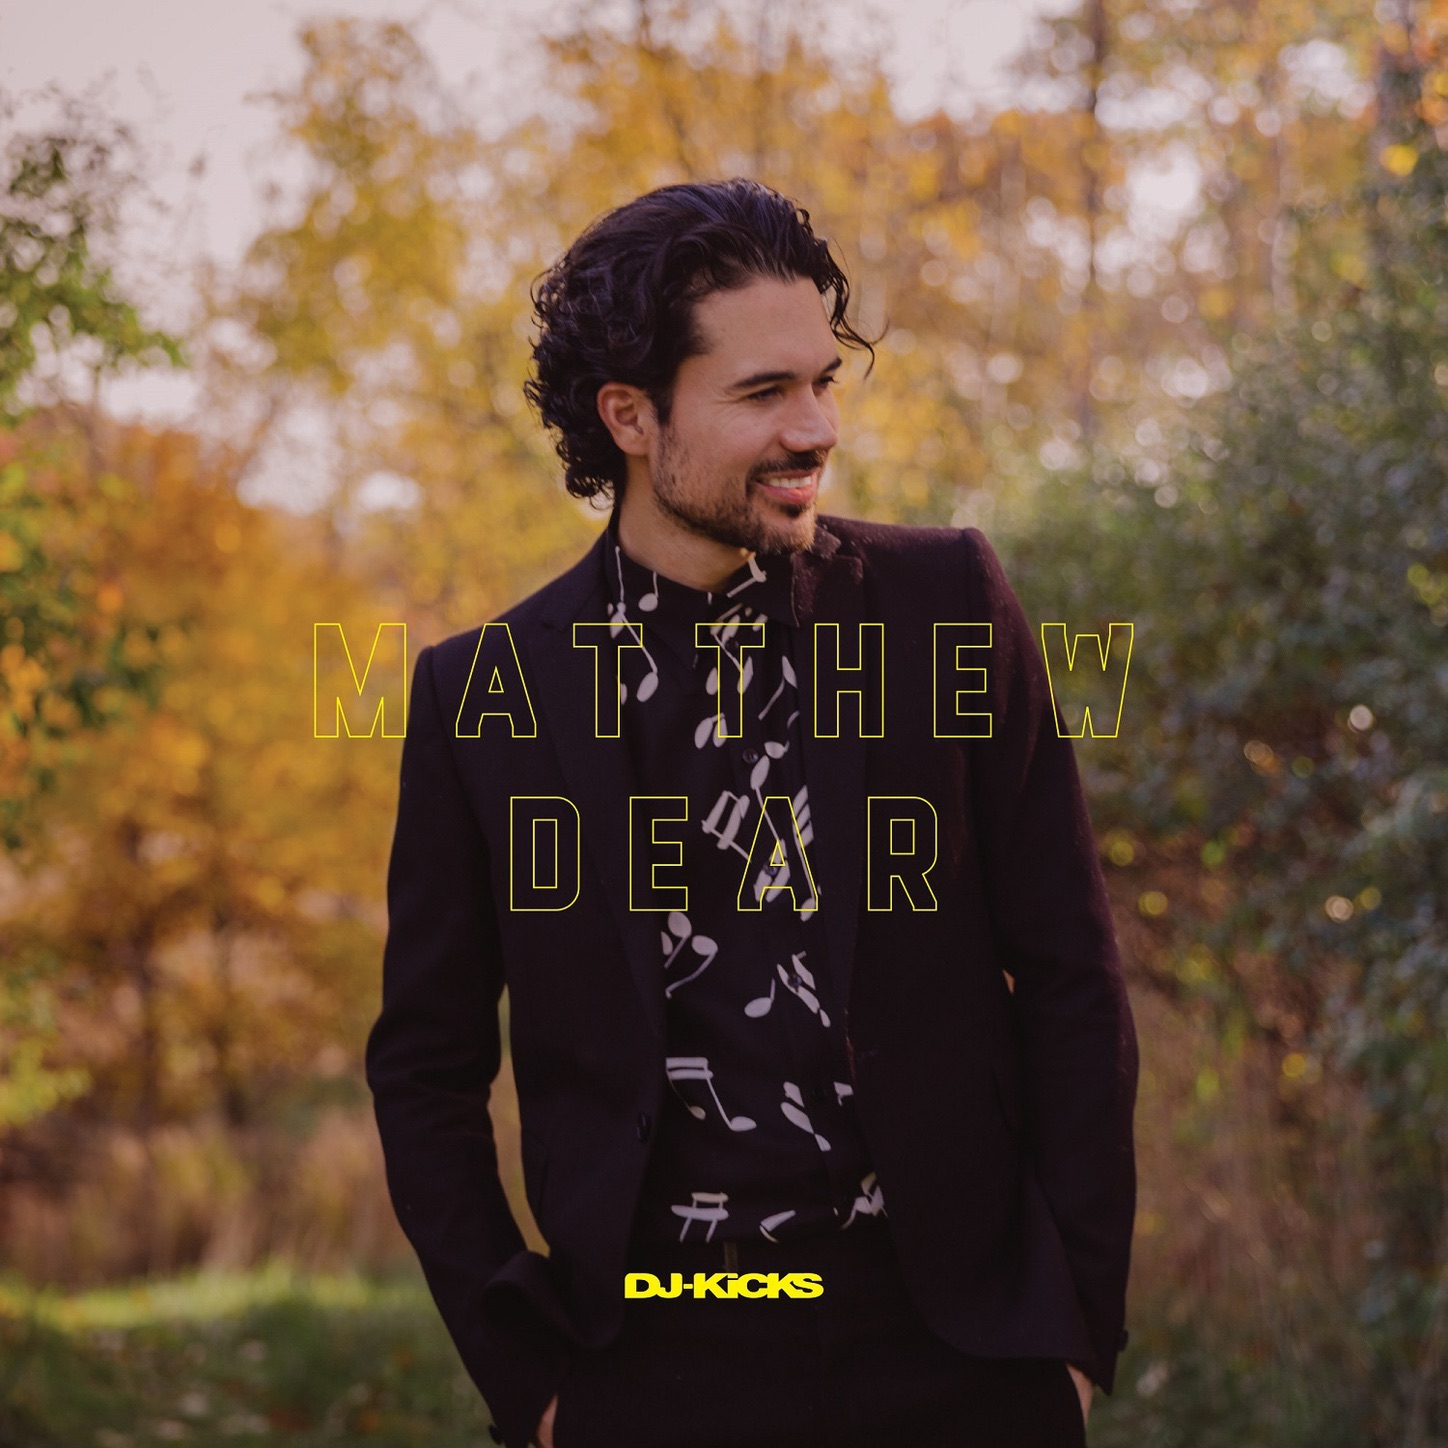 DJ-Kicks (Mixed By Matthew Dear) [Mixed Tracks]